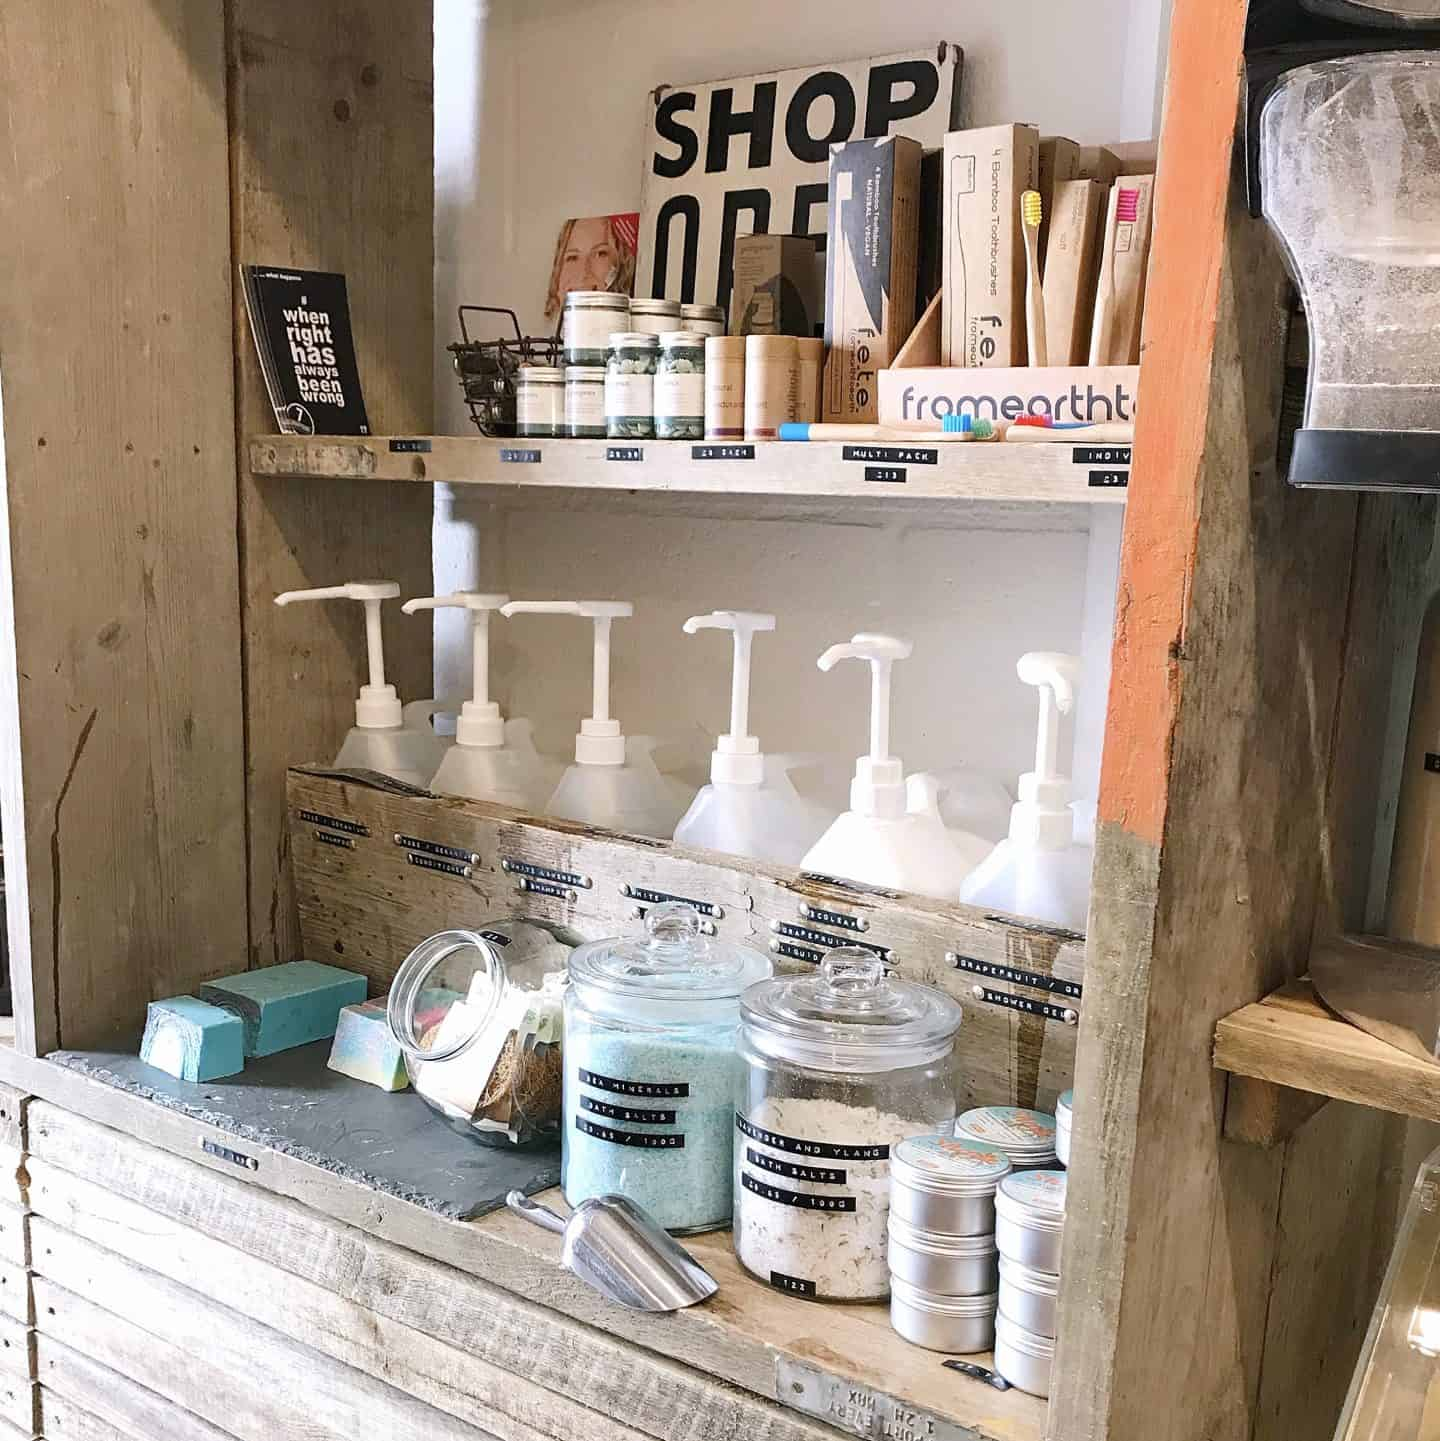 Refilable toiletries are easy swaps you can make to reduce waste